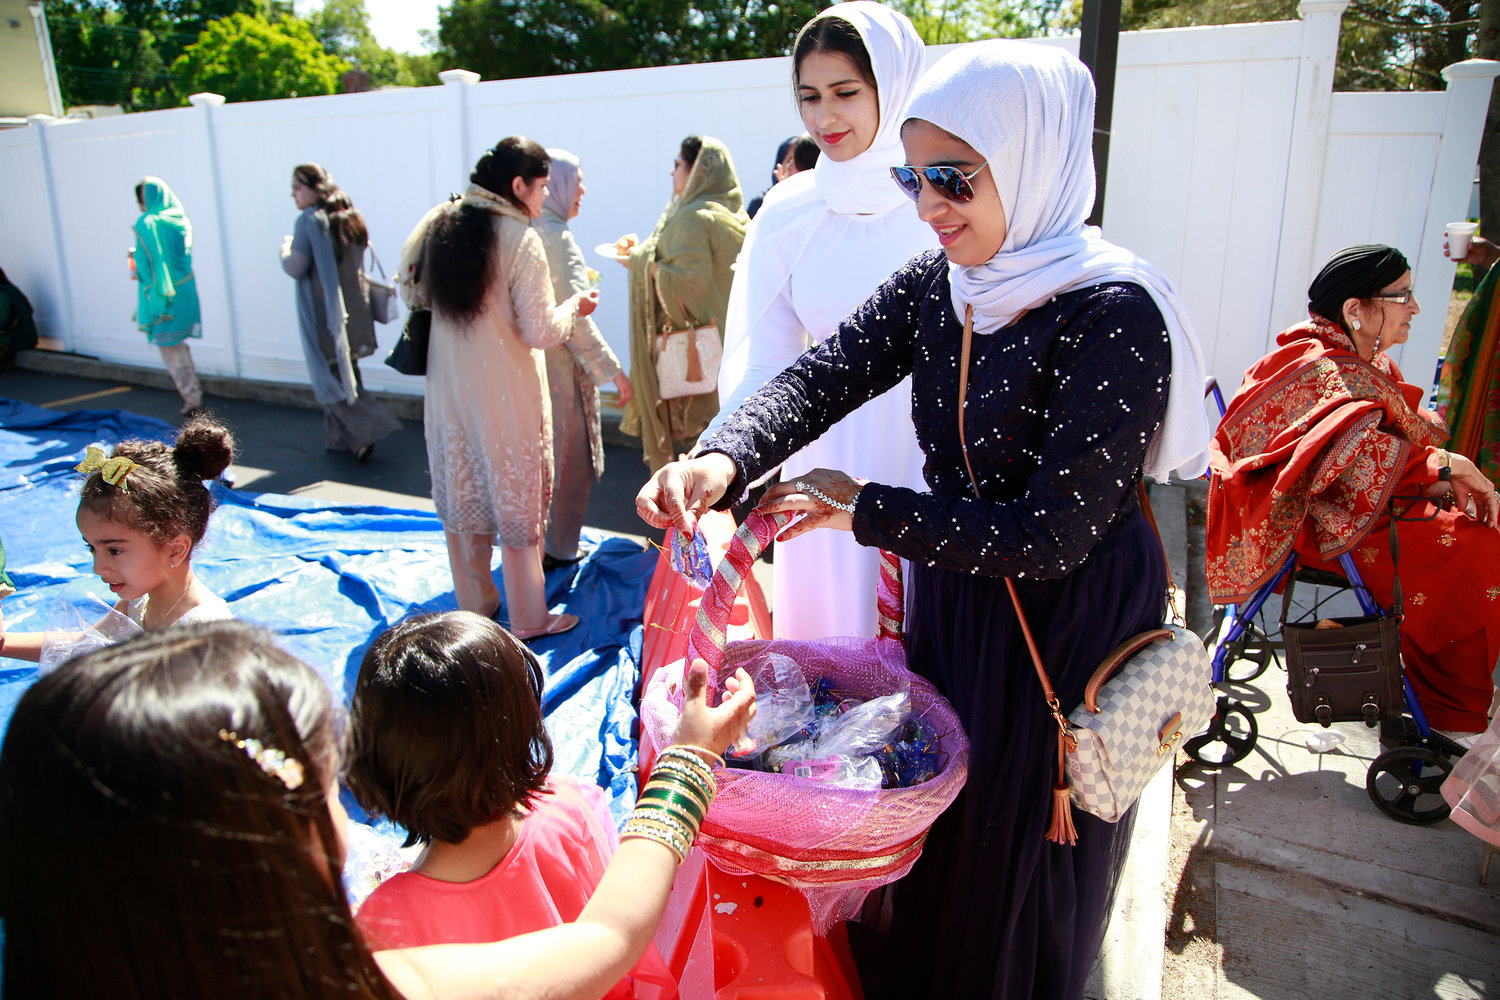 Maysa Kapadia and Musra Aahmed handed out treats to children.